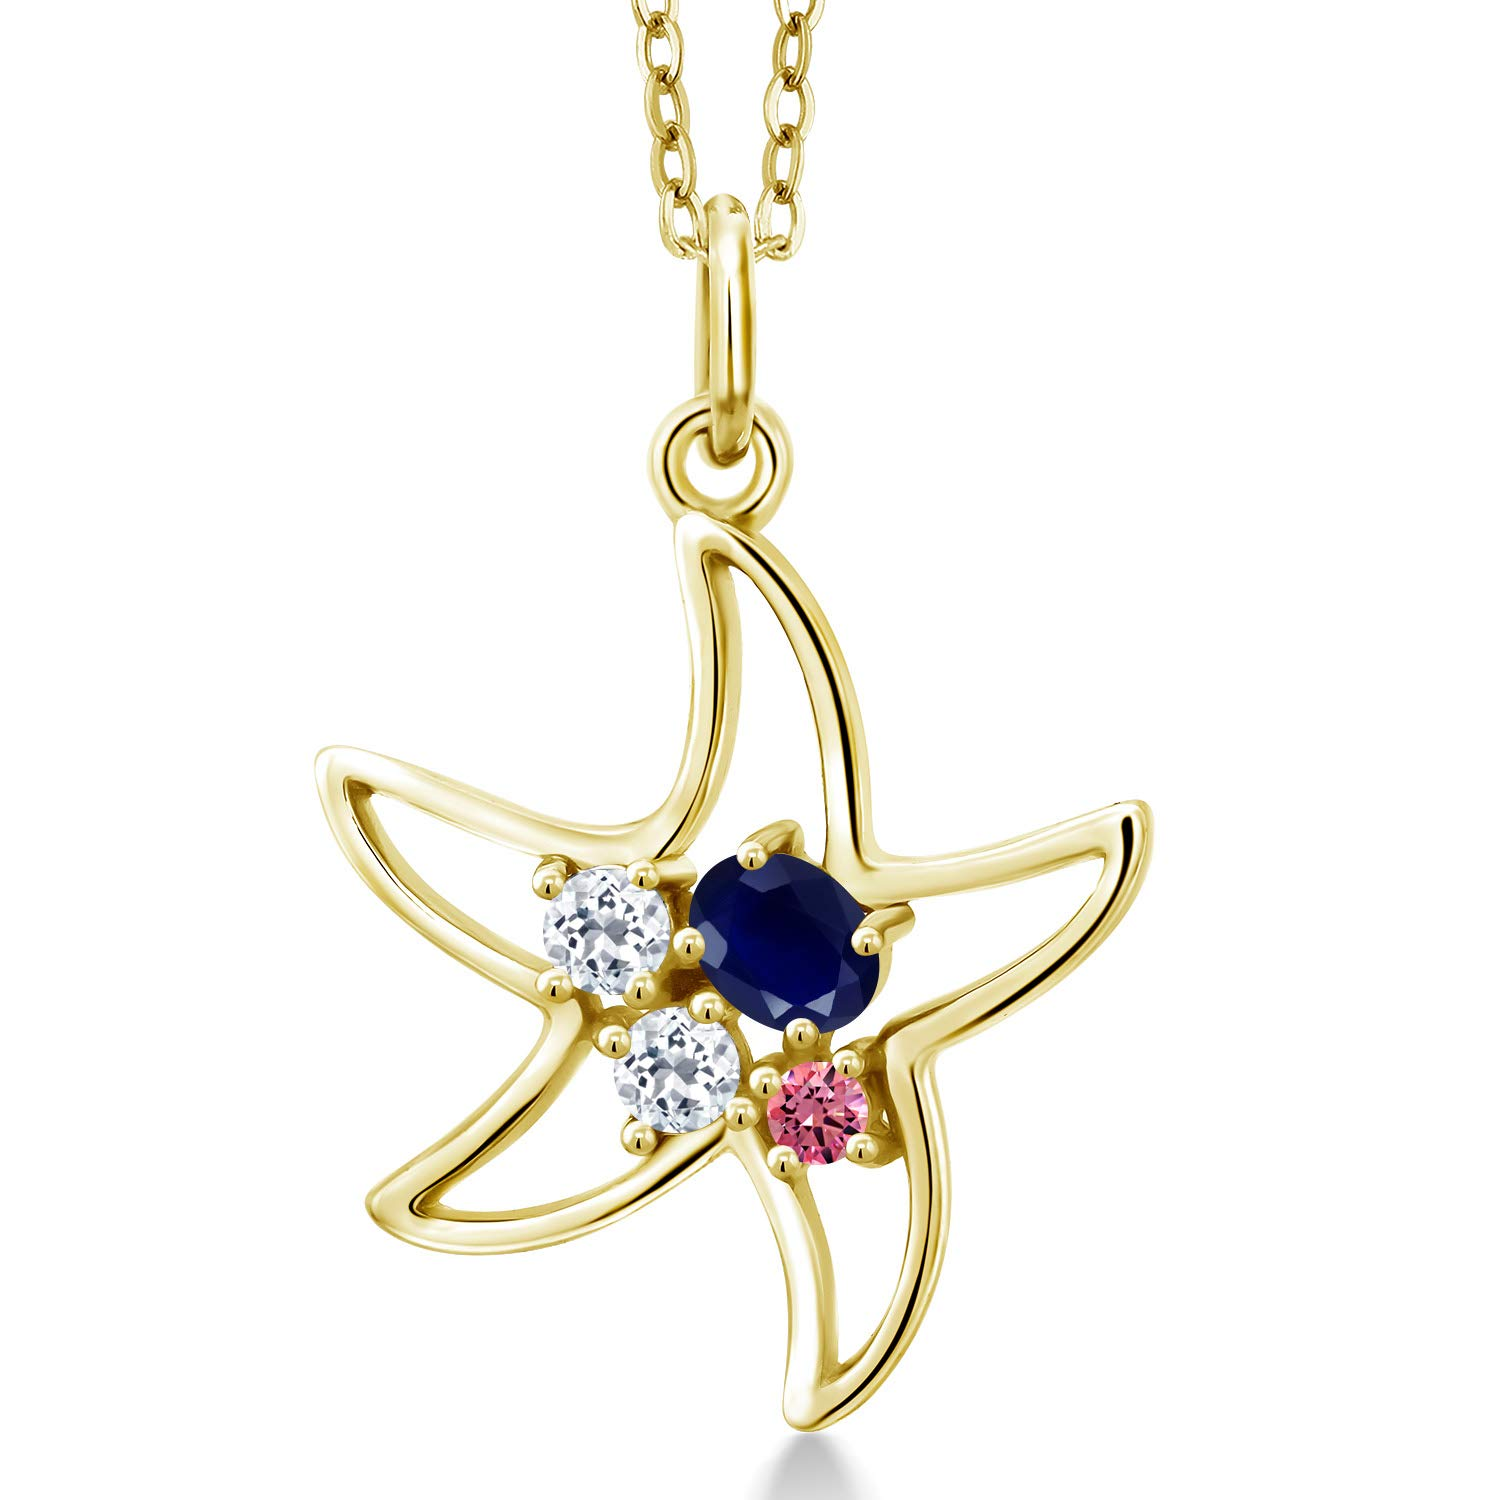 Gem Stone King 0.42 Ct Oval Blue Sapphire White Topaz 18K Yellow Gold Plated Silver Starfish Necklace